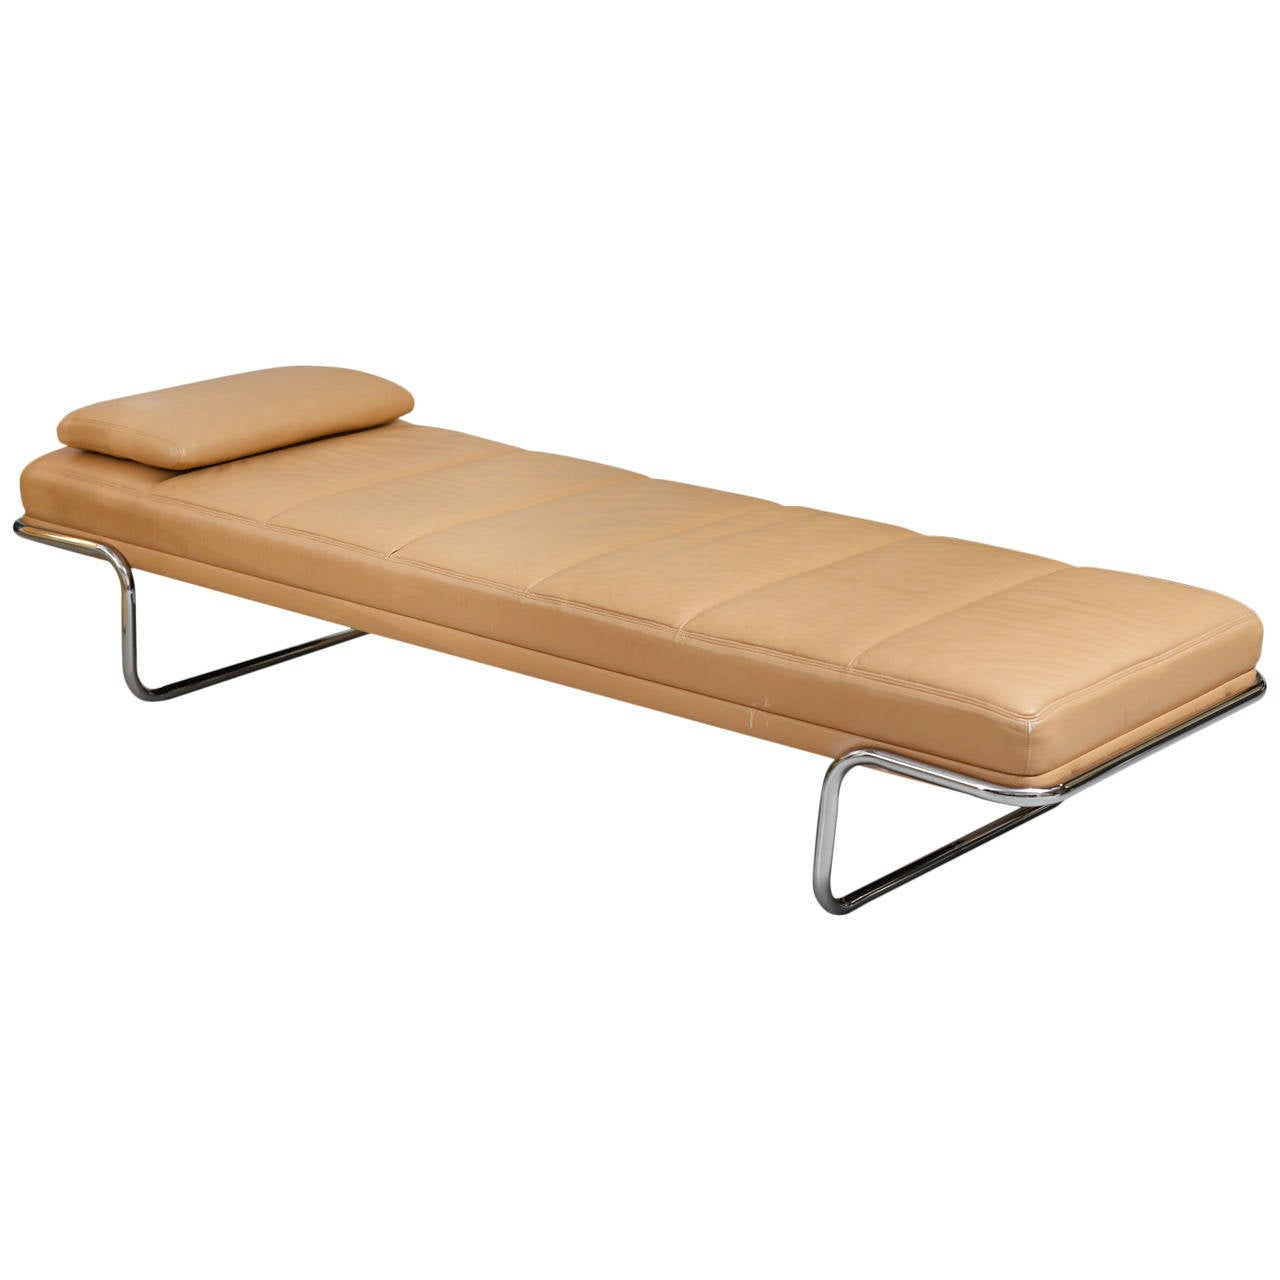 Brayton leather daybed at 1stdibs for Sofa bed 8101